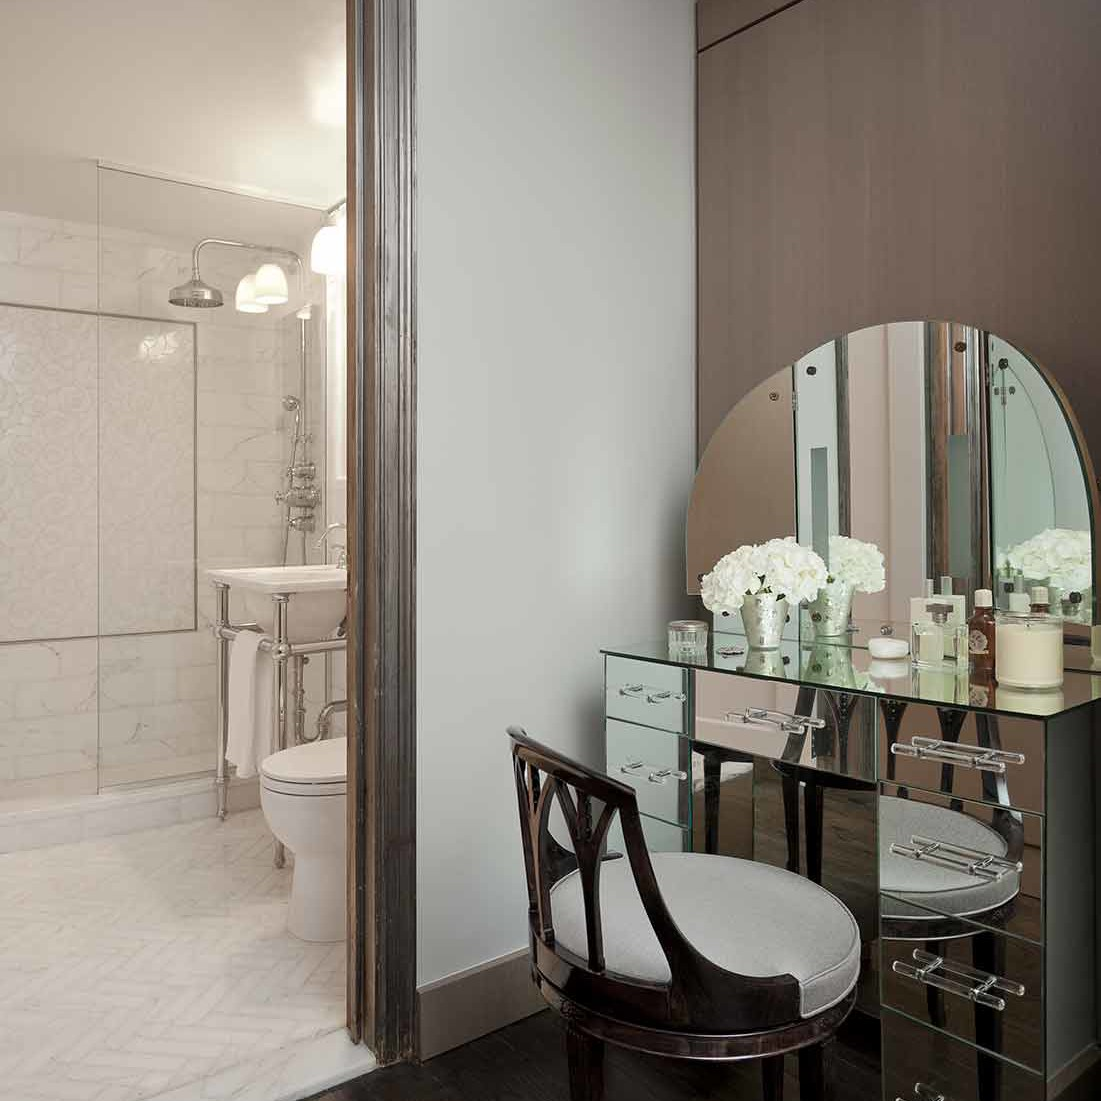 Dressing room located conveniently off of the bath in a NYC apartment